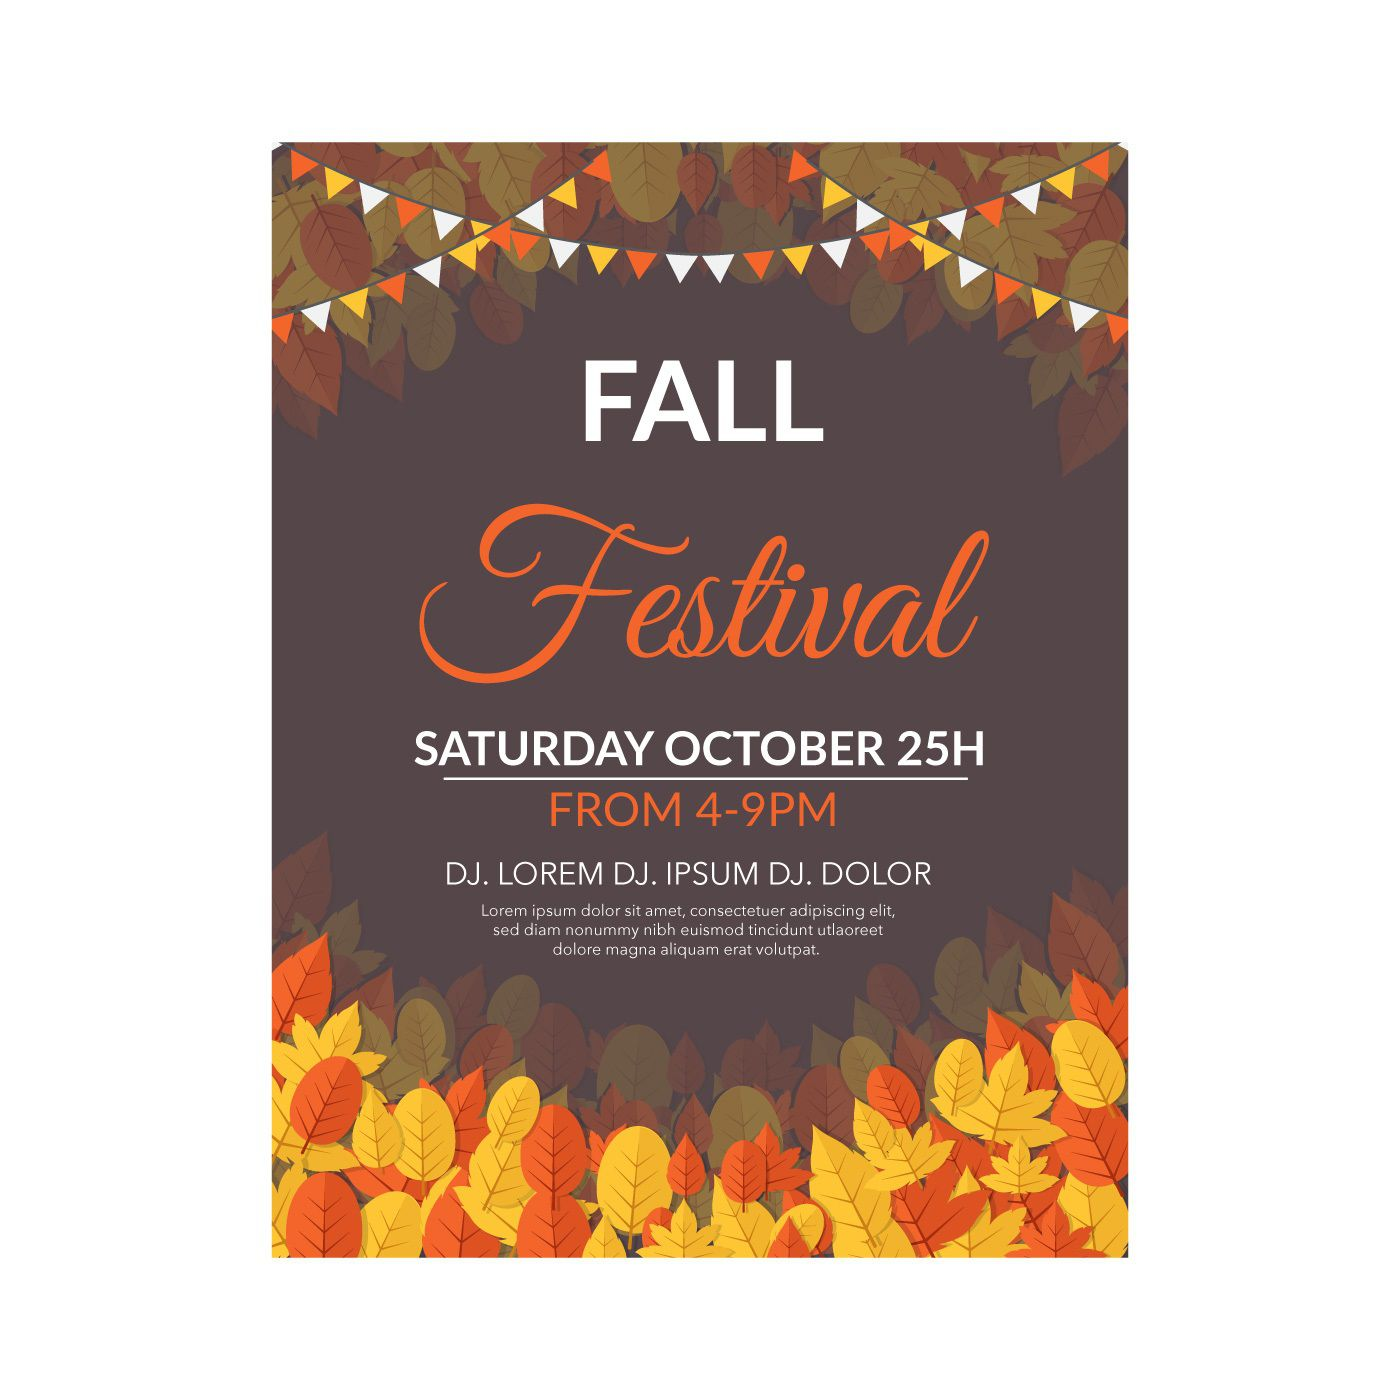 001 Formidable Fall Festival Flyer Template Design  FreeFull